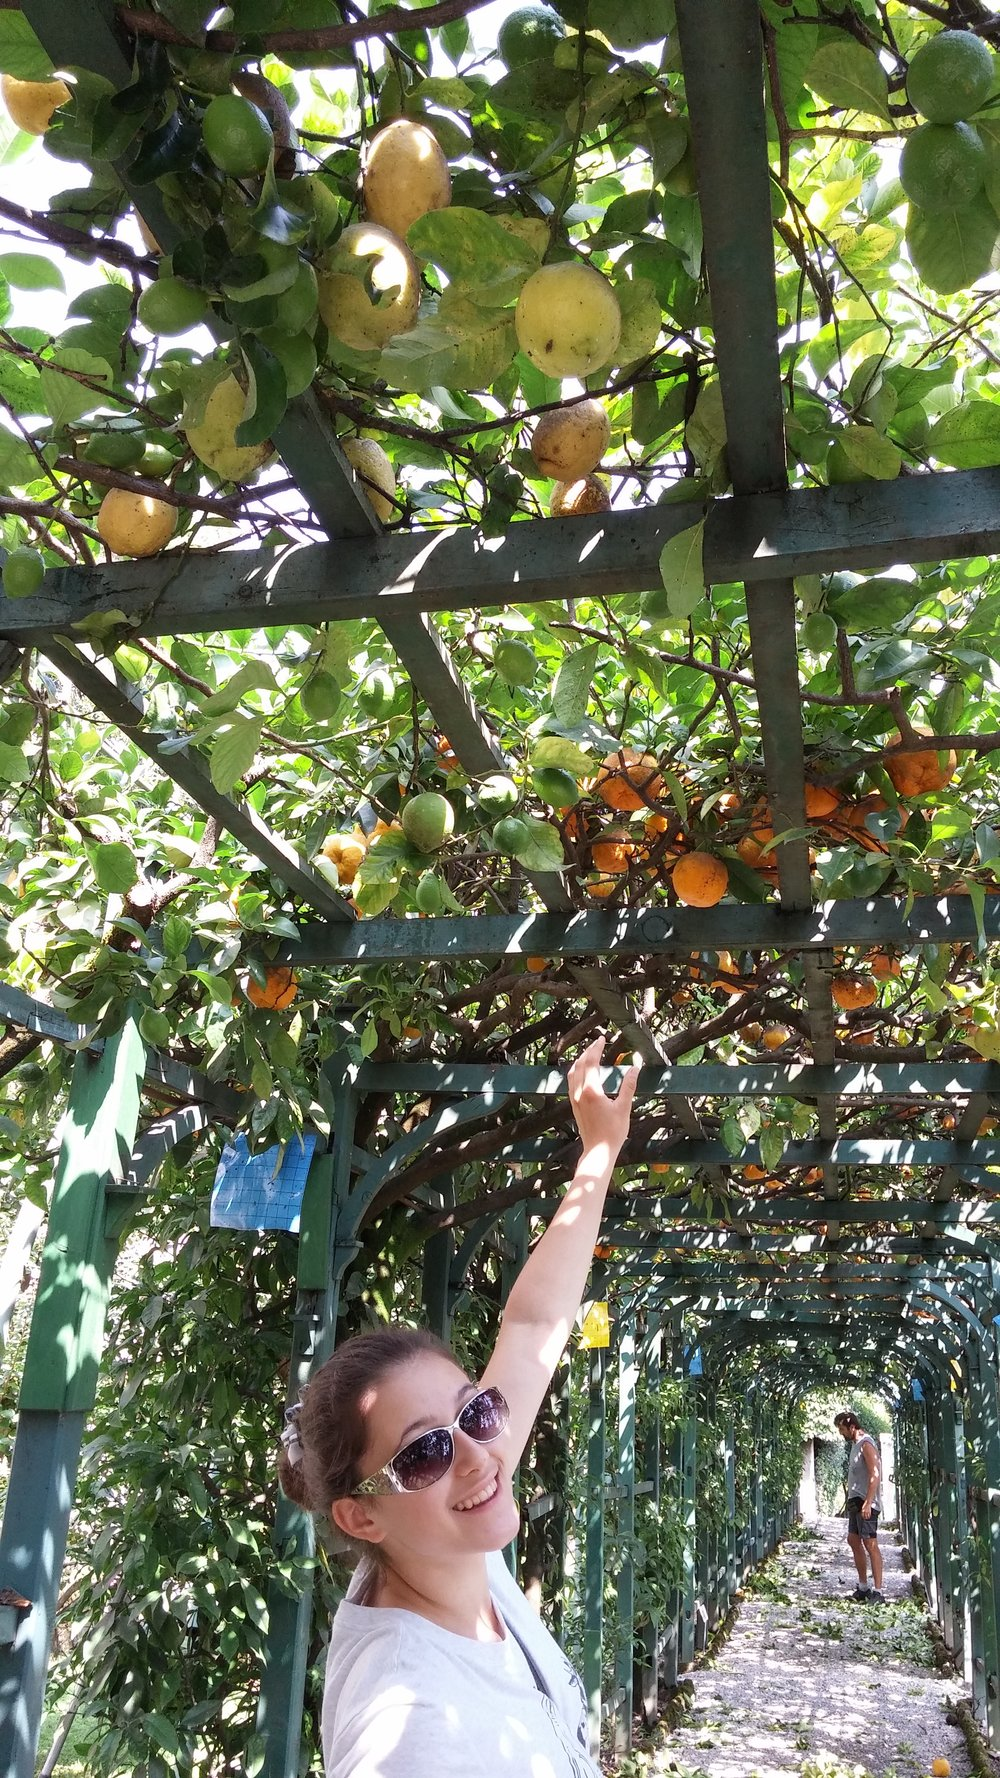 This is me rescuing some urban fruit in Italy a couple years ago, photo by Denise Koufogiannakis